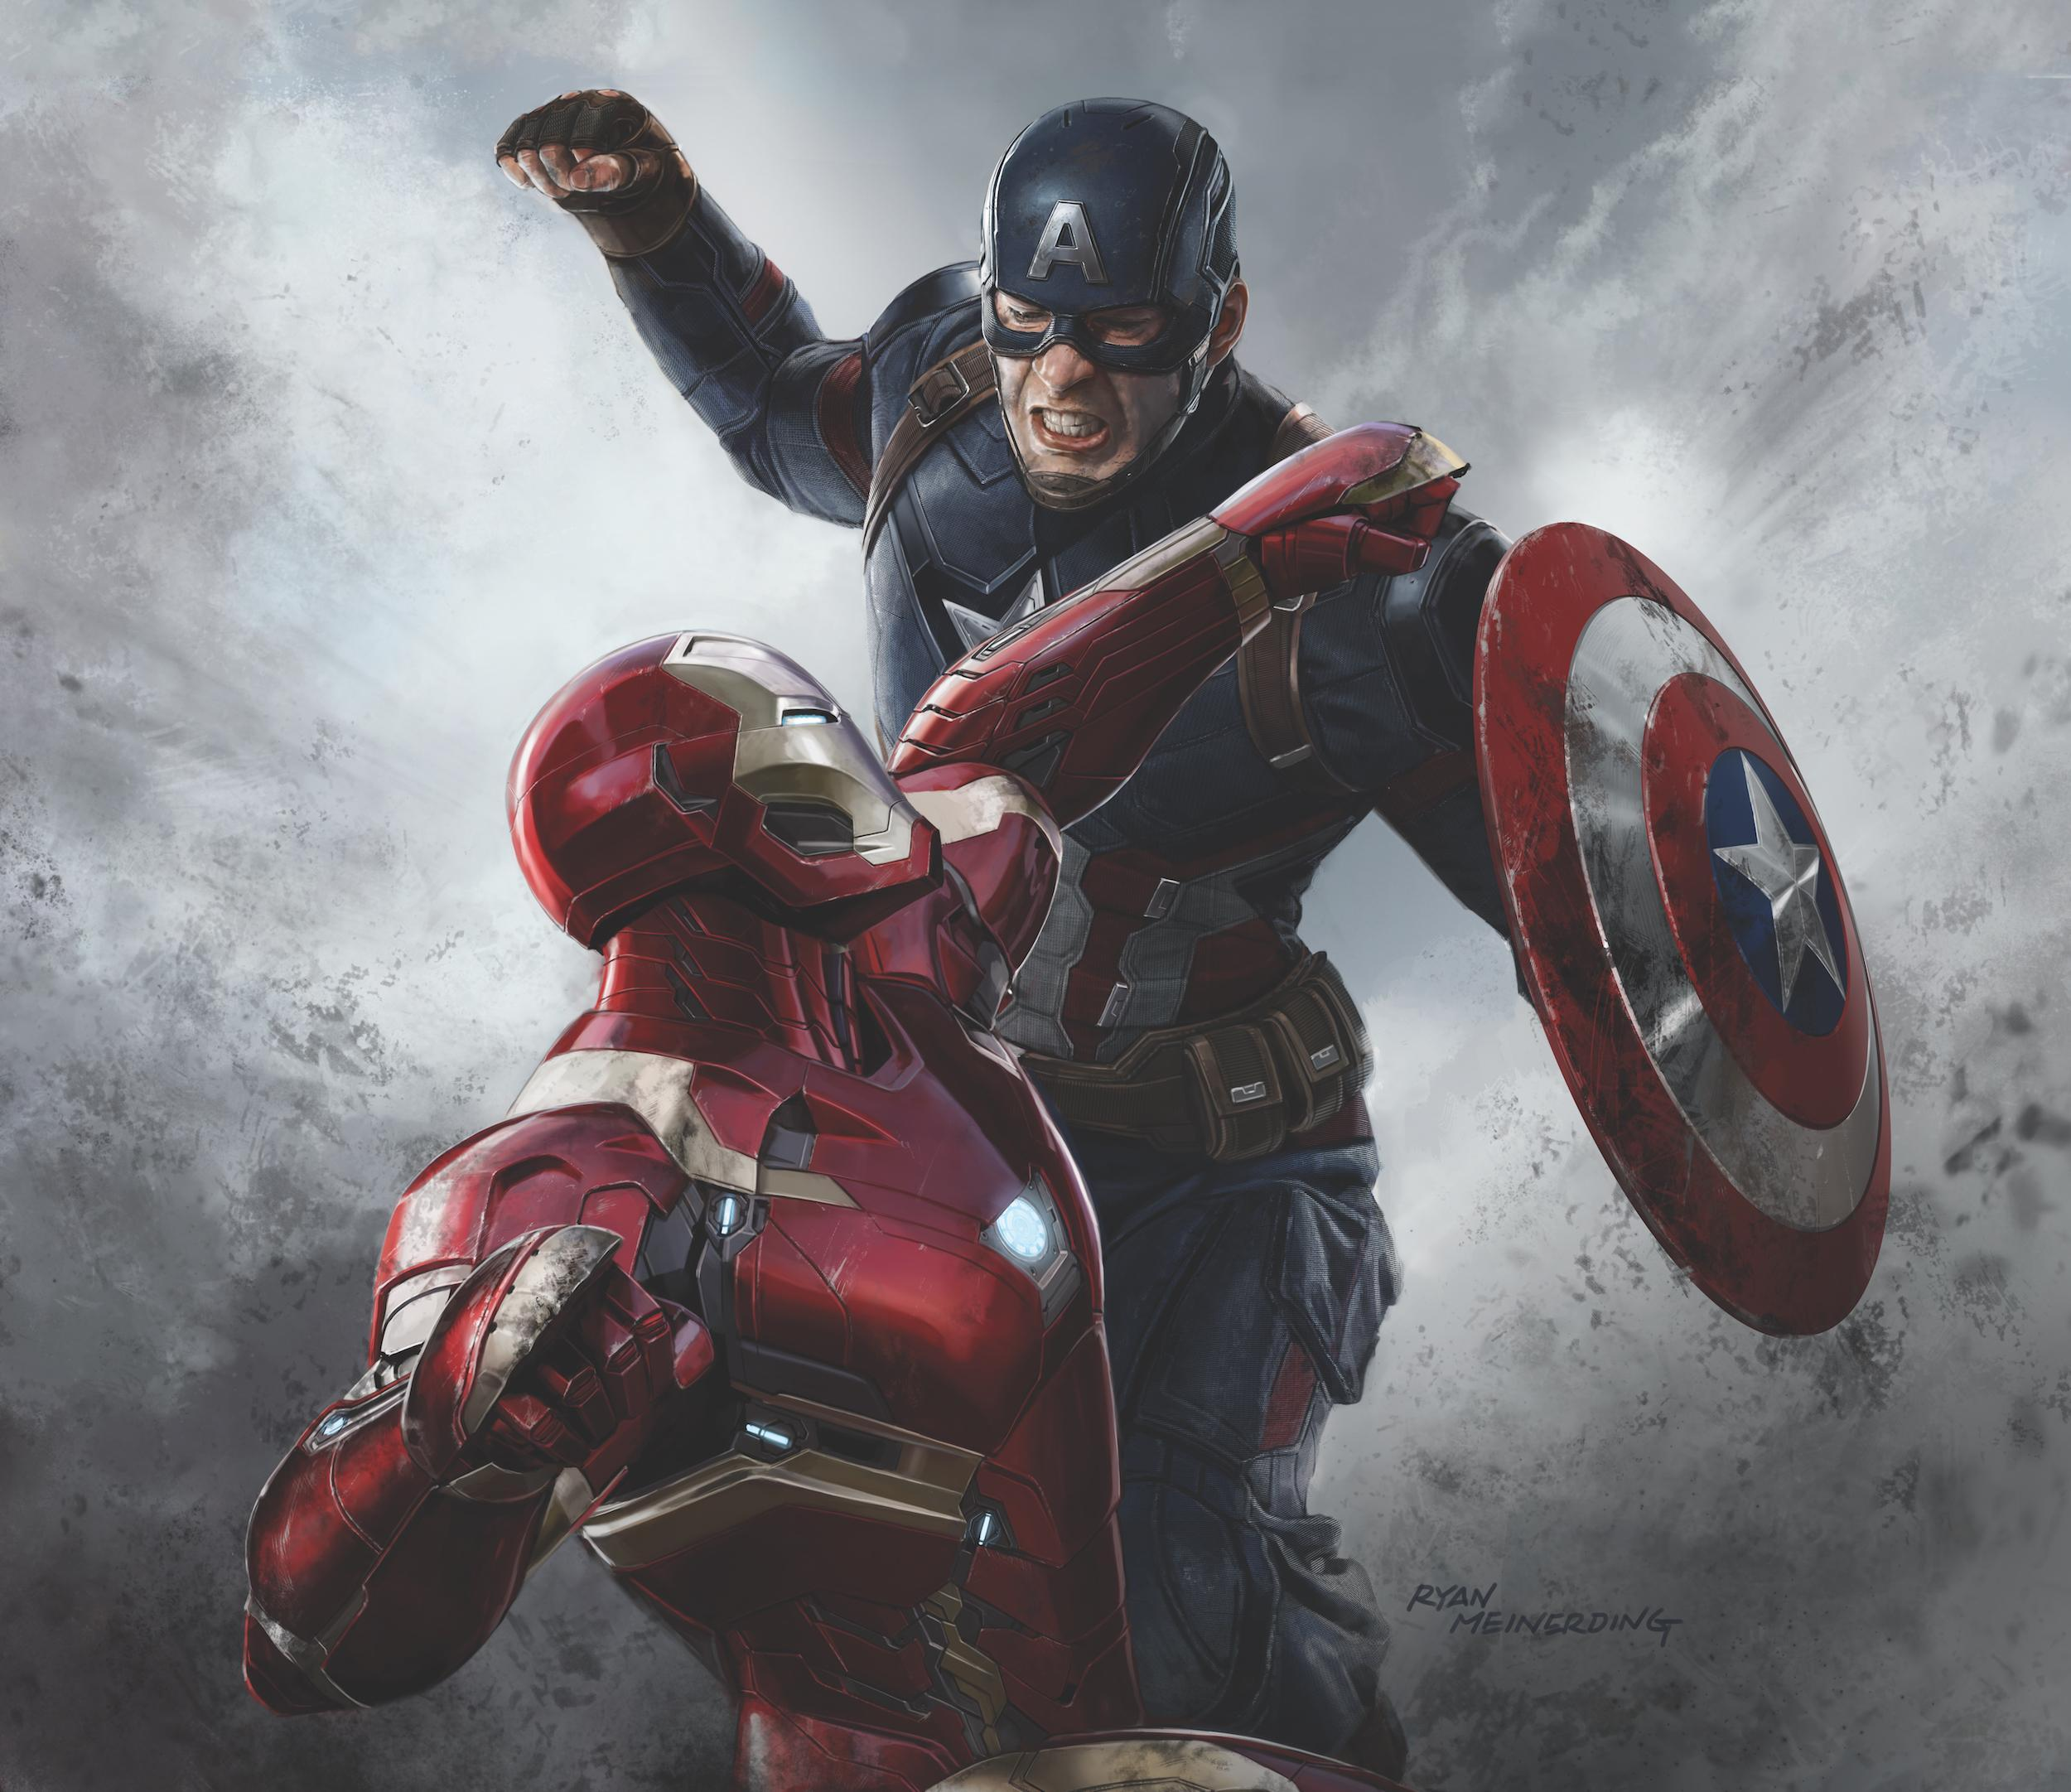 captain america vs iron man wallpaper  Iron Man Vs Captain America Wallpapers - Wallpaper Cave